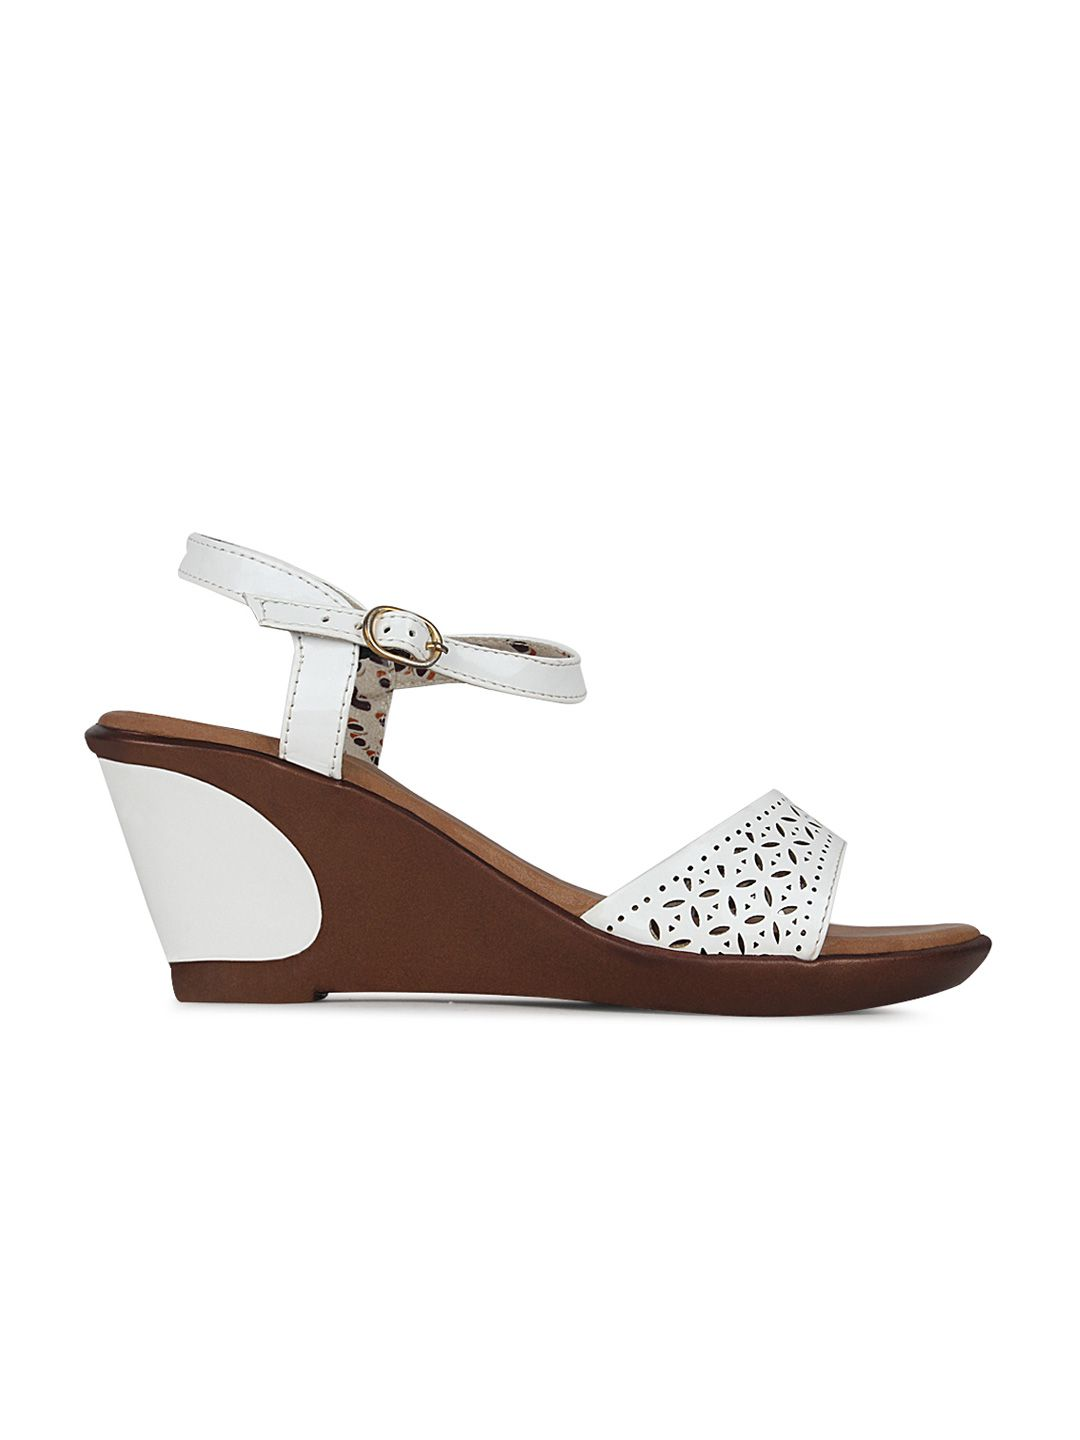 low price fee shipping for sale Gisole Tan Wedges Heels cheap CTrNWu1n